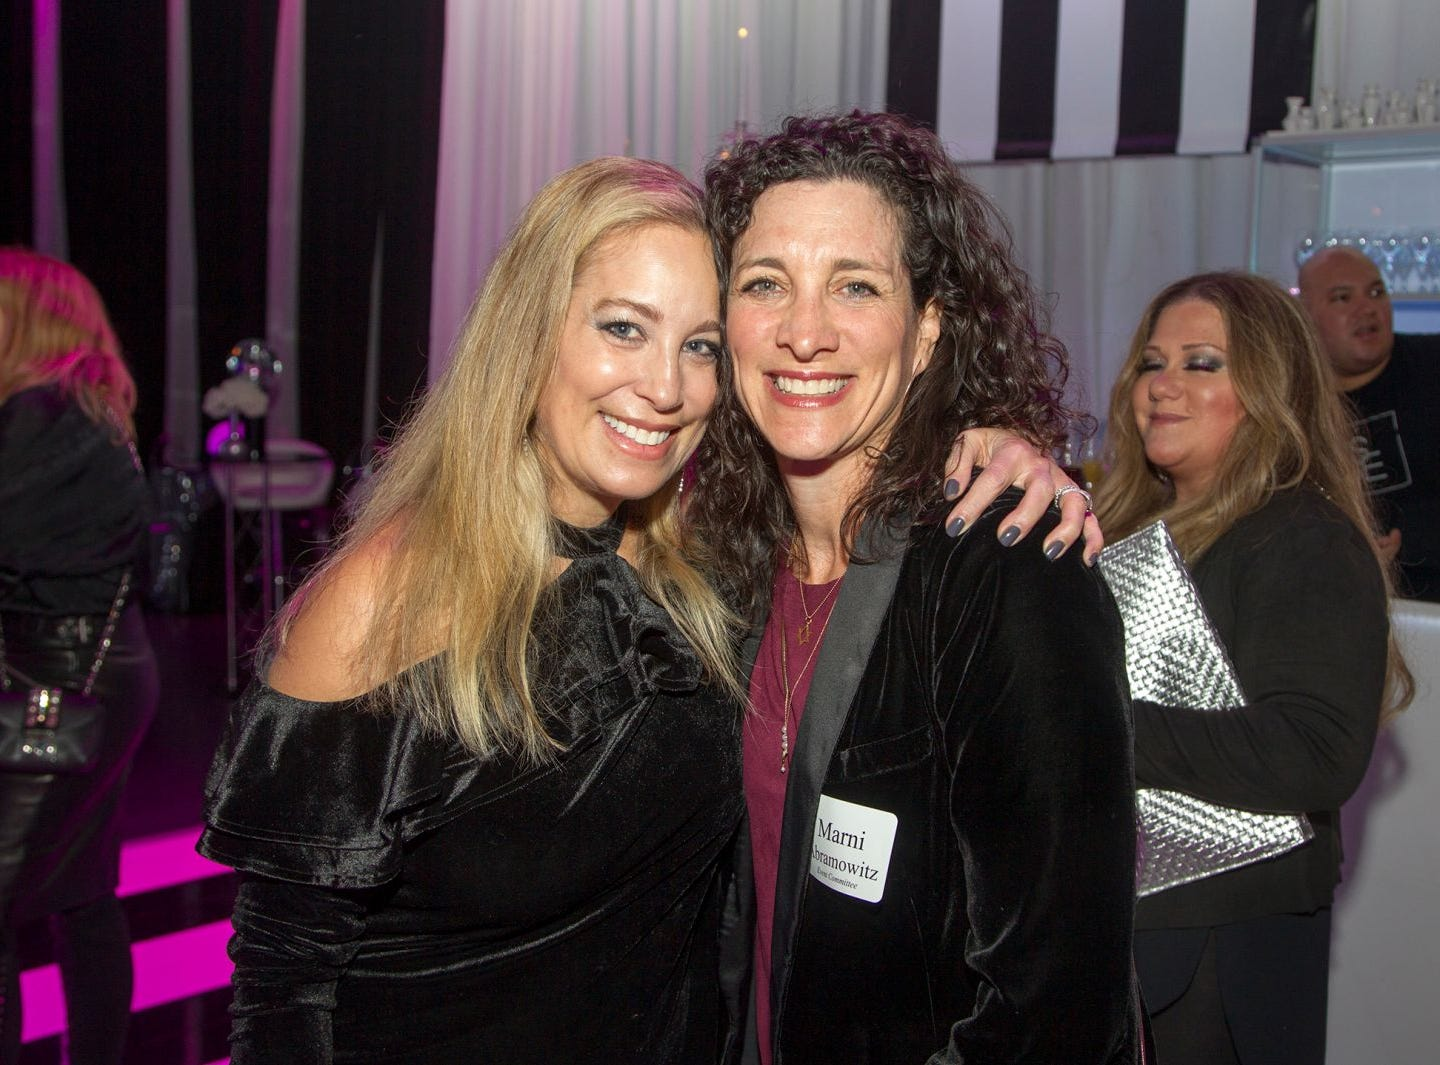 Dana Adler, Marni Abramowitz. Jewish Federation of Northern New Jersey held its first Girl's Night Out dance party at Space in Englewood. 01/24/2019